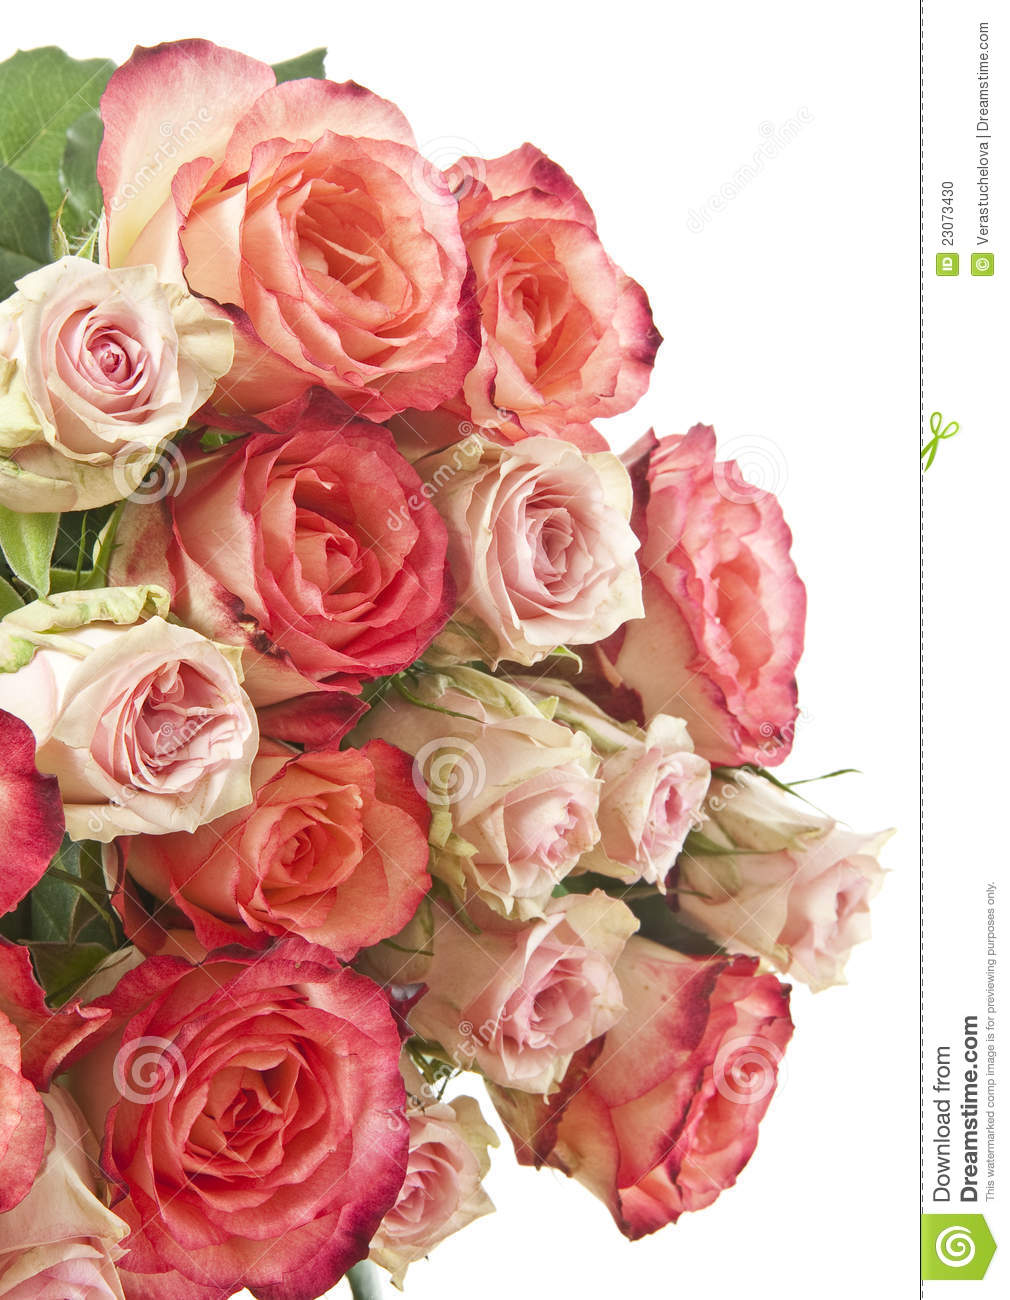 Pink and red roses in detail stock photo image 23073430 for Do black roses really exist